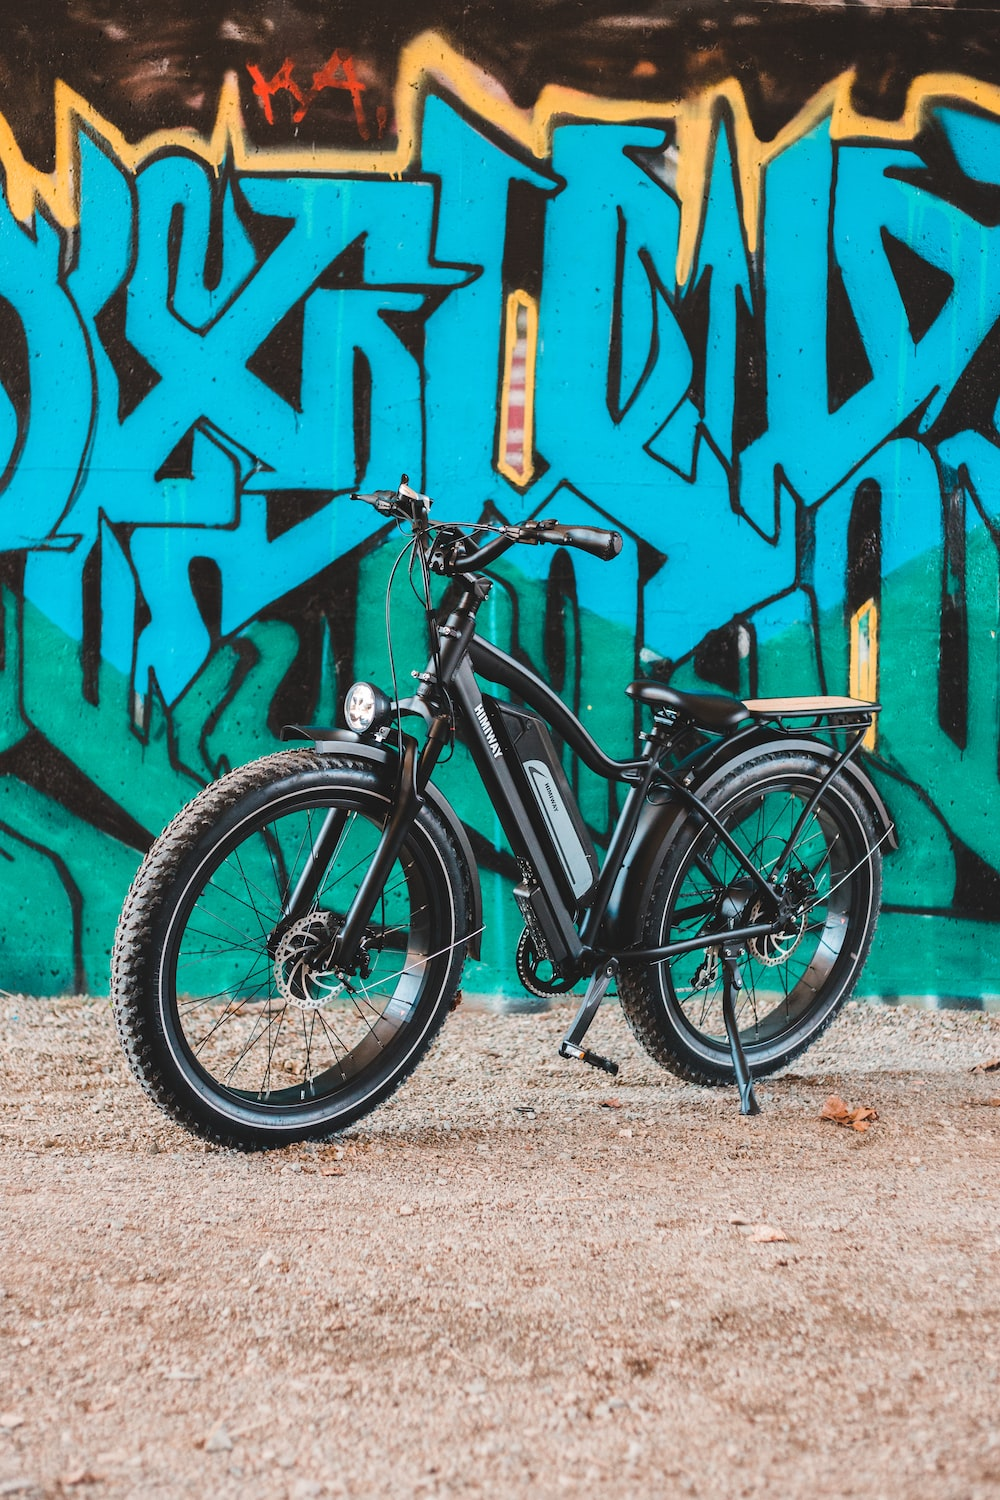 black and gray mountain bike leaning on wall with graffiti